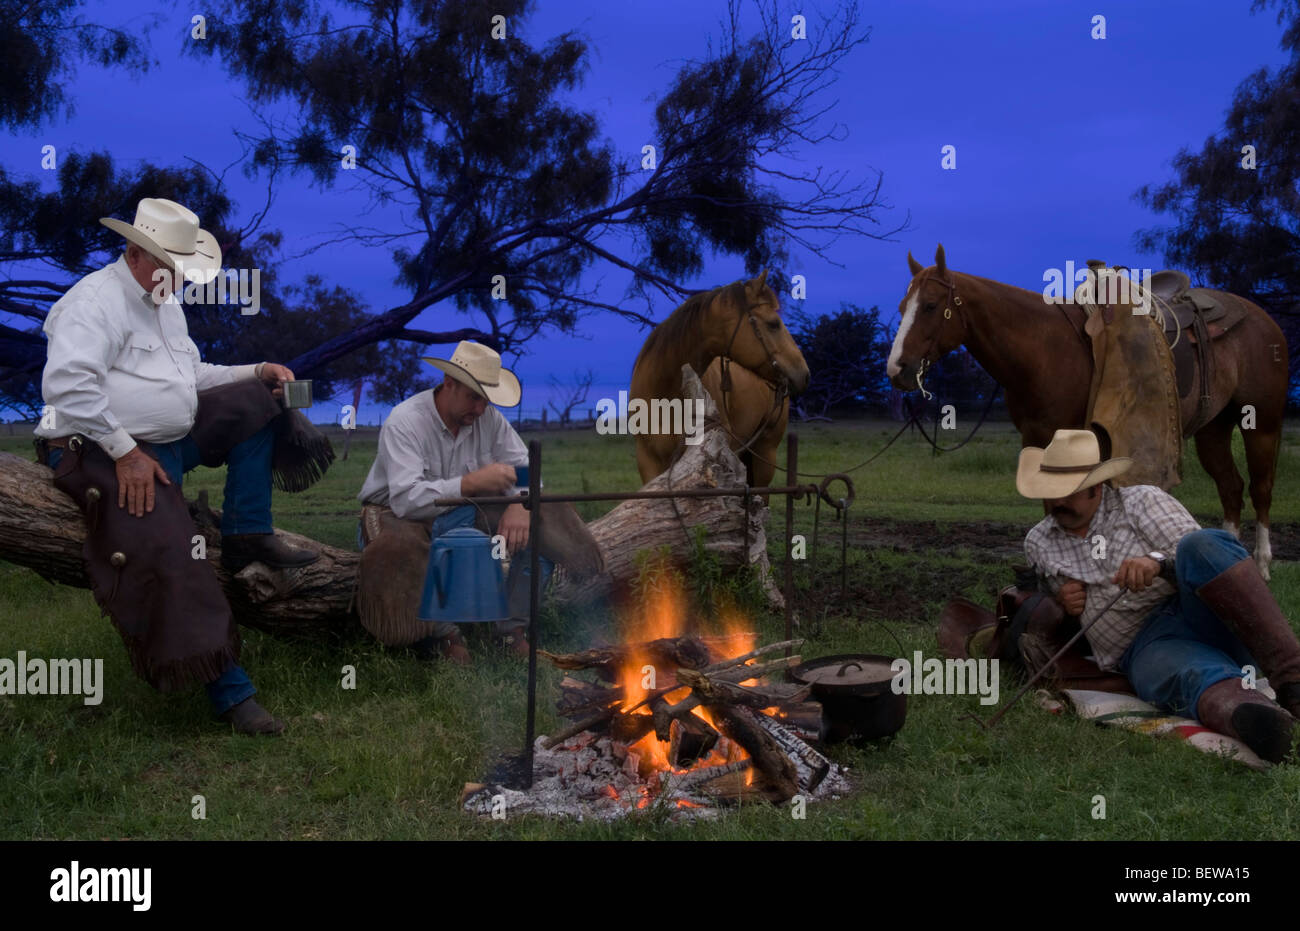 Cowboys resting beside a campfire - Stock Image